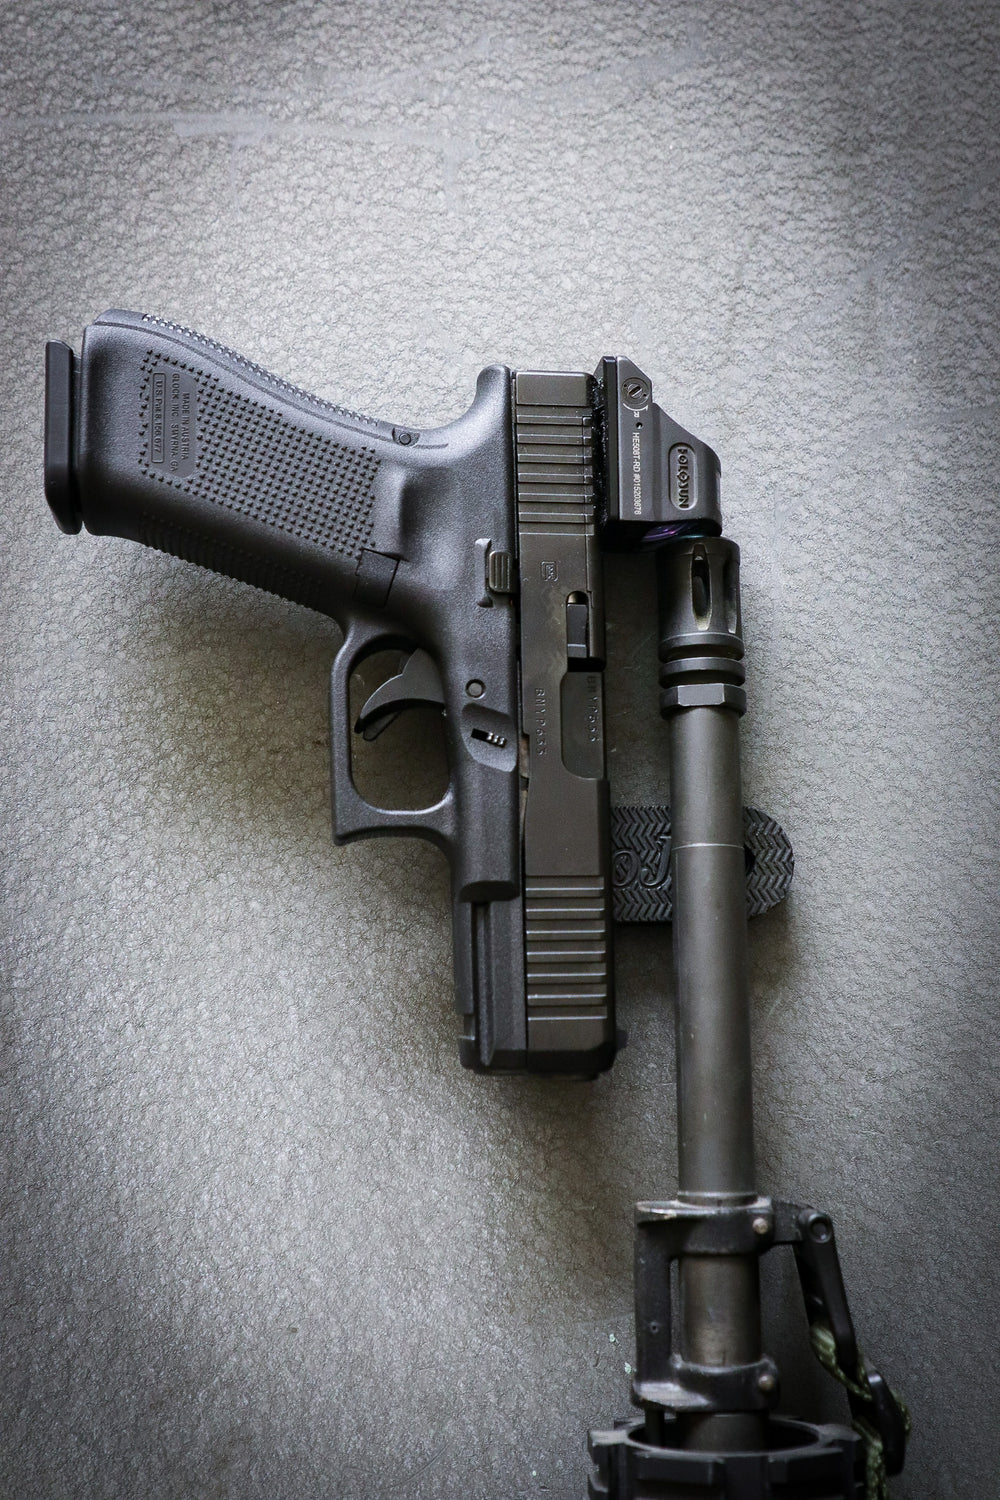 Pistol and a AR rifle held by a gun gripper gun magnet on a safe door